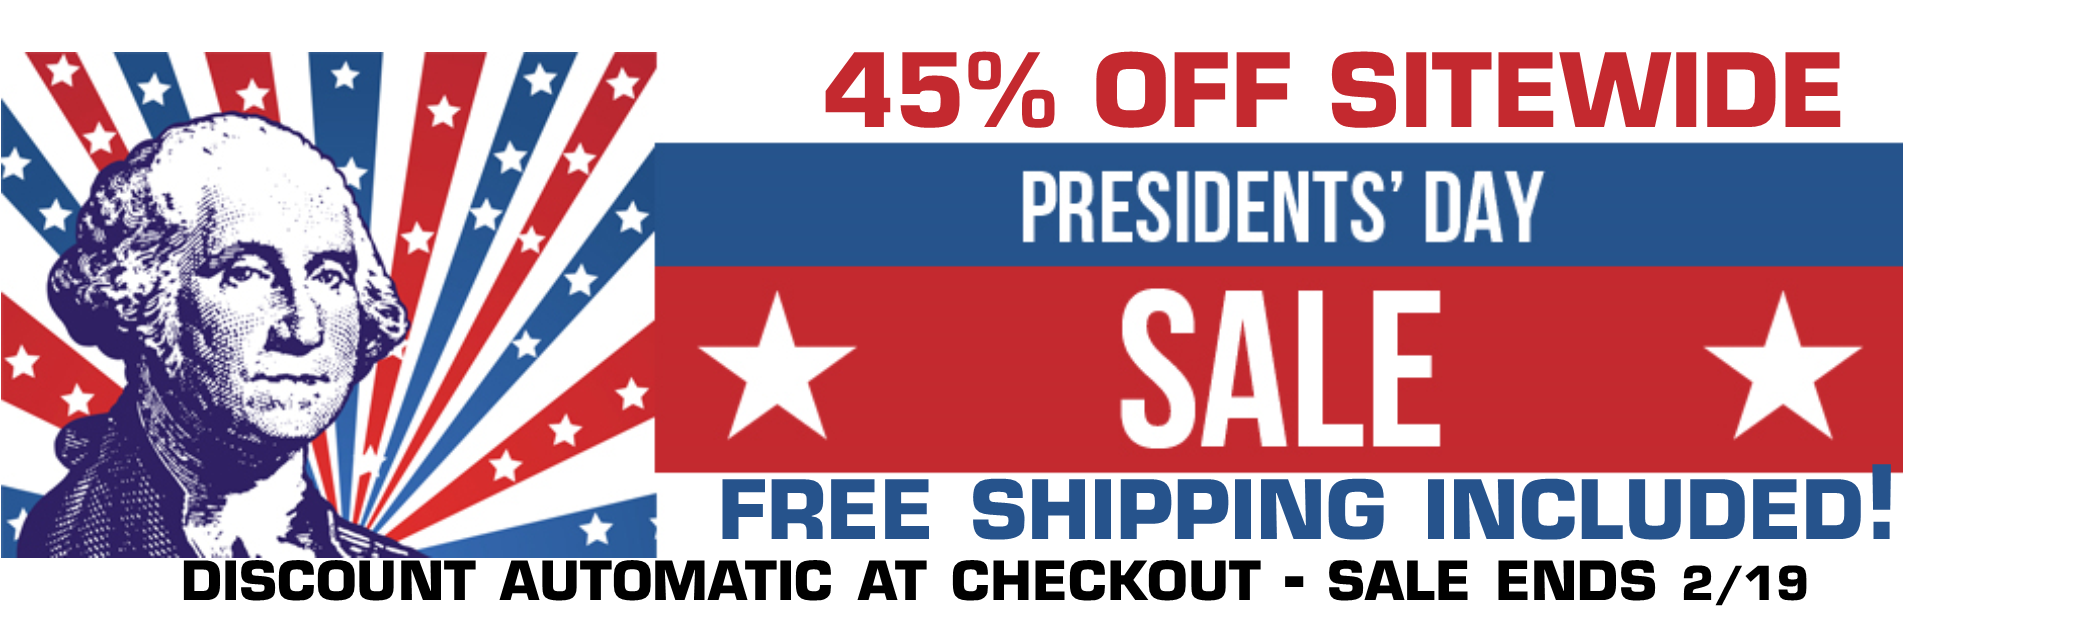 presidents-day-sale-2018-banner-1.png